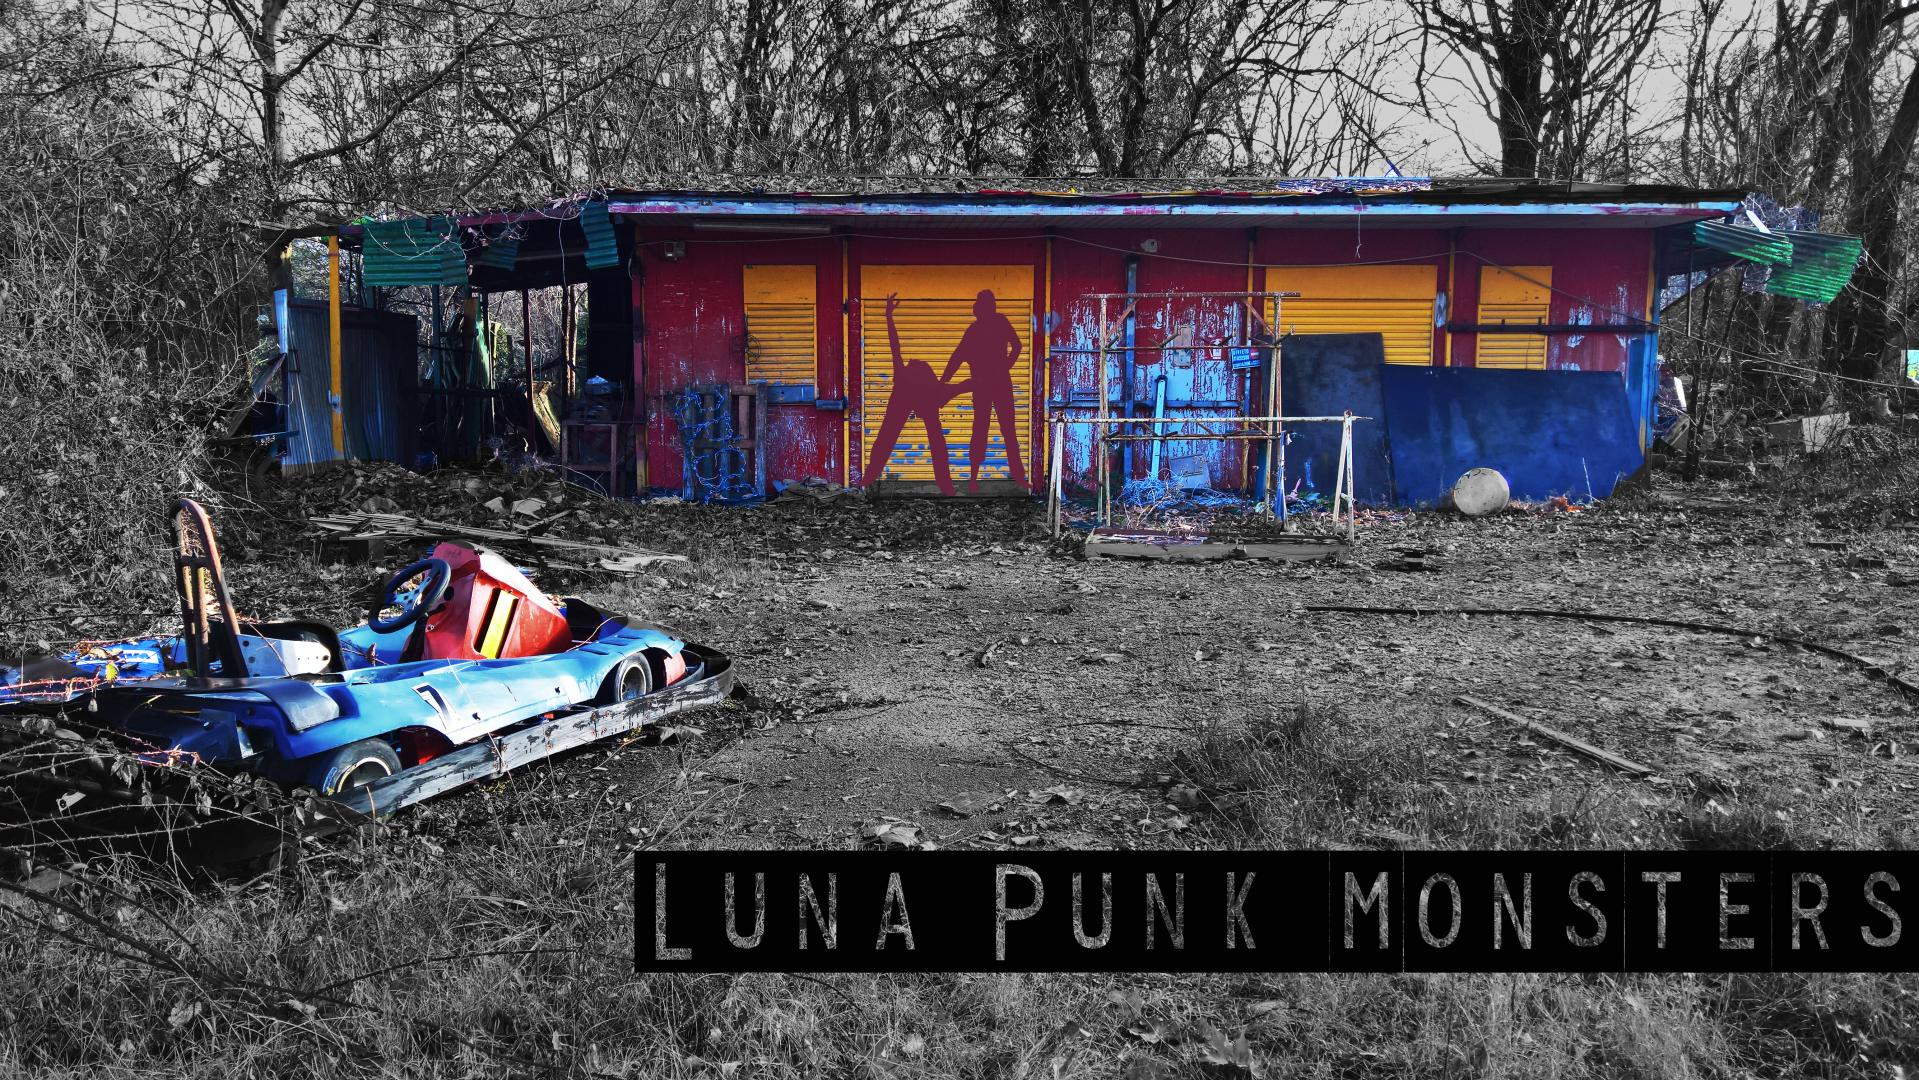 Luna Punk Monsters